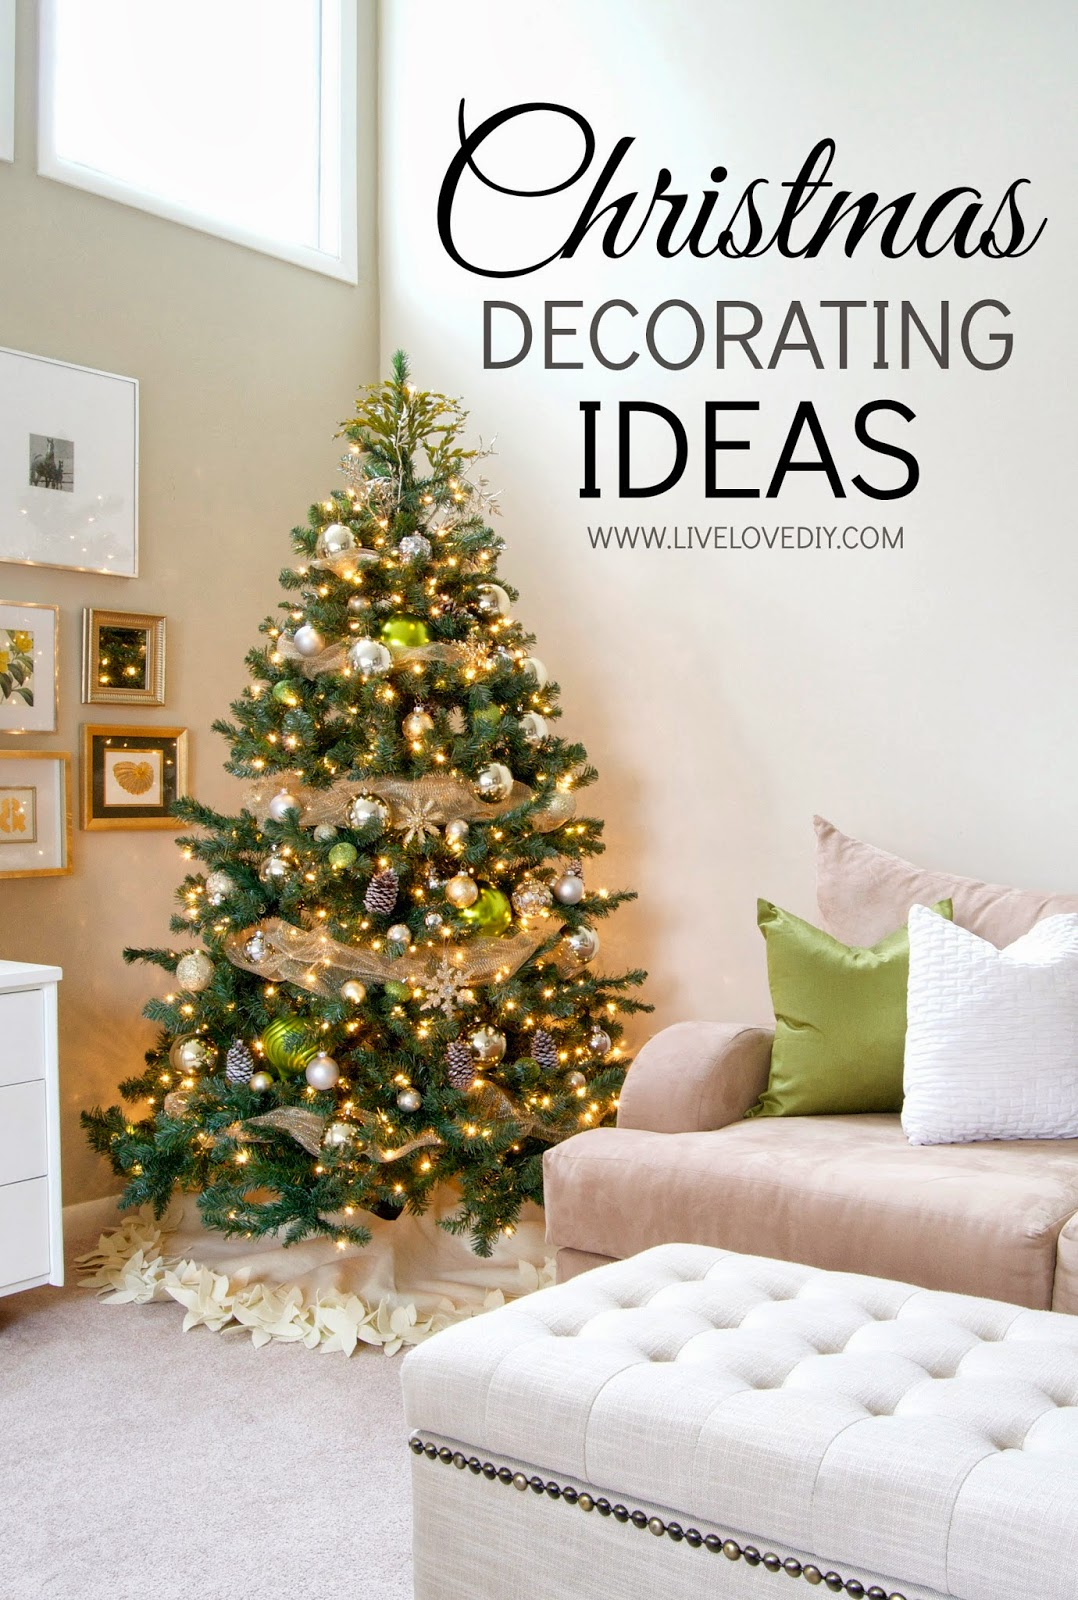 CHRISTMAS DECORATING IDEAS MAIN